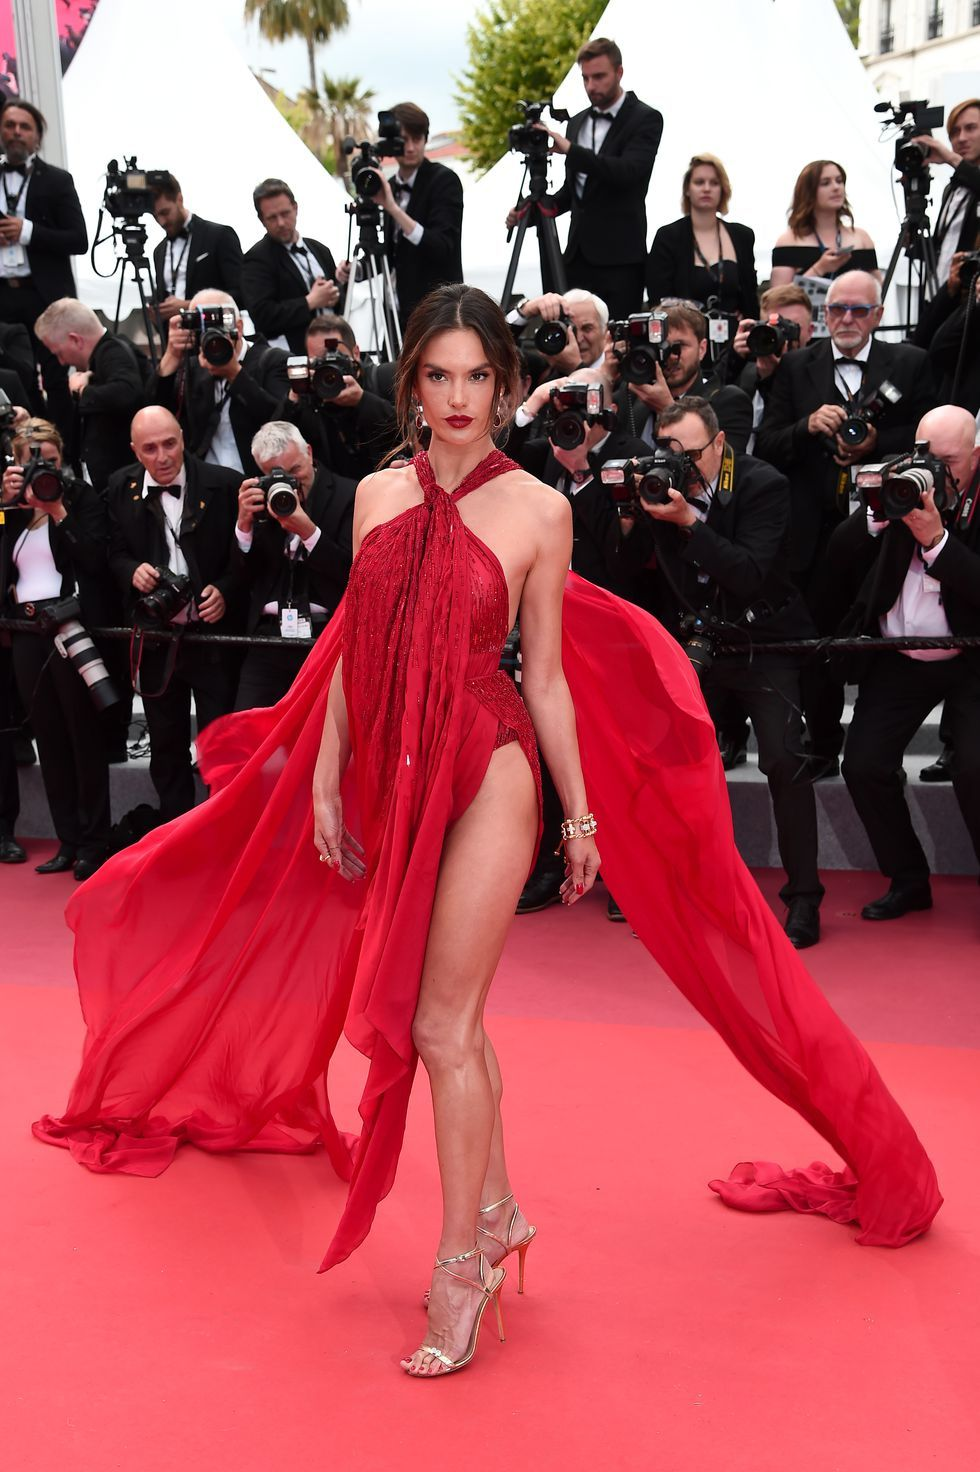 Alessandra Ambrosio At the premiere of Les Misérables on May 15, 2019.